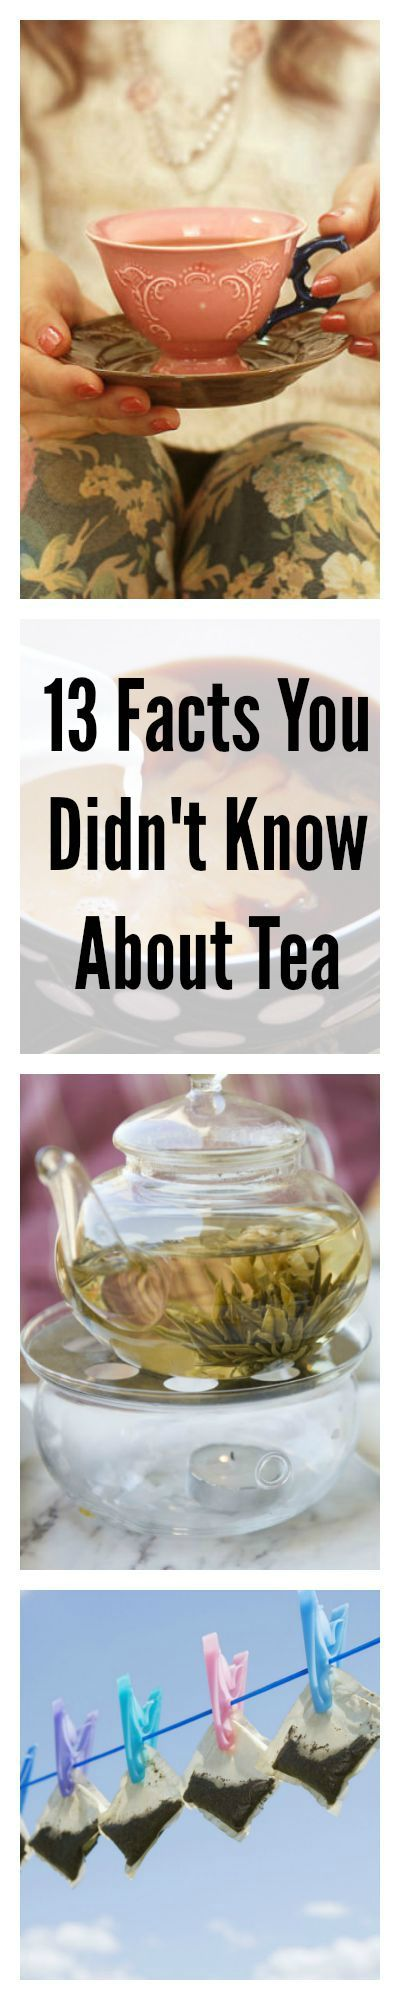 Like drinking tea? These facts will teach out a lot about the drink, how to cook it, and why to drink even more of it. There's always more to learn (and love) about the world's most widely consumed beverage.